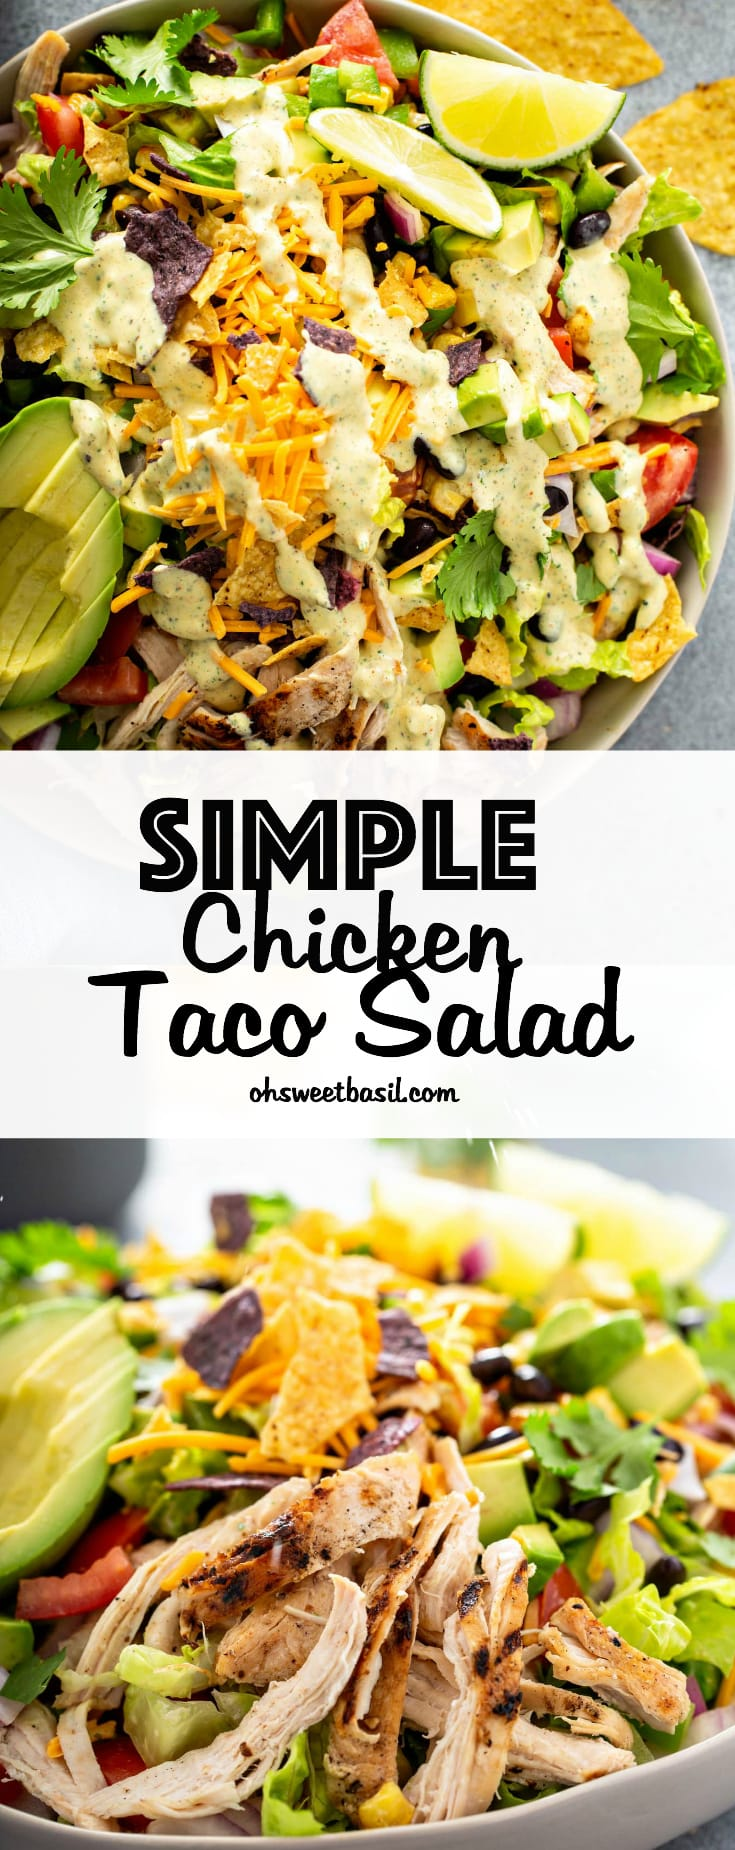 A large bowl of chicken taco salad. There is shredded chicken, cheese, cilantro, beans, corn, tomatoes, red onions, peppers and sliced avocados. There are 2 lime wedges next to the salad and chips and dressing in the background.